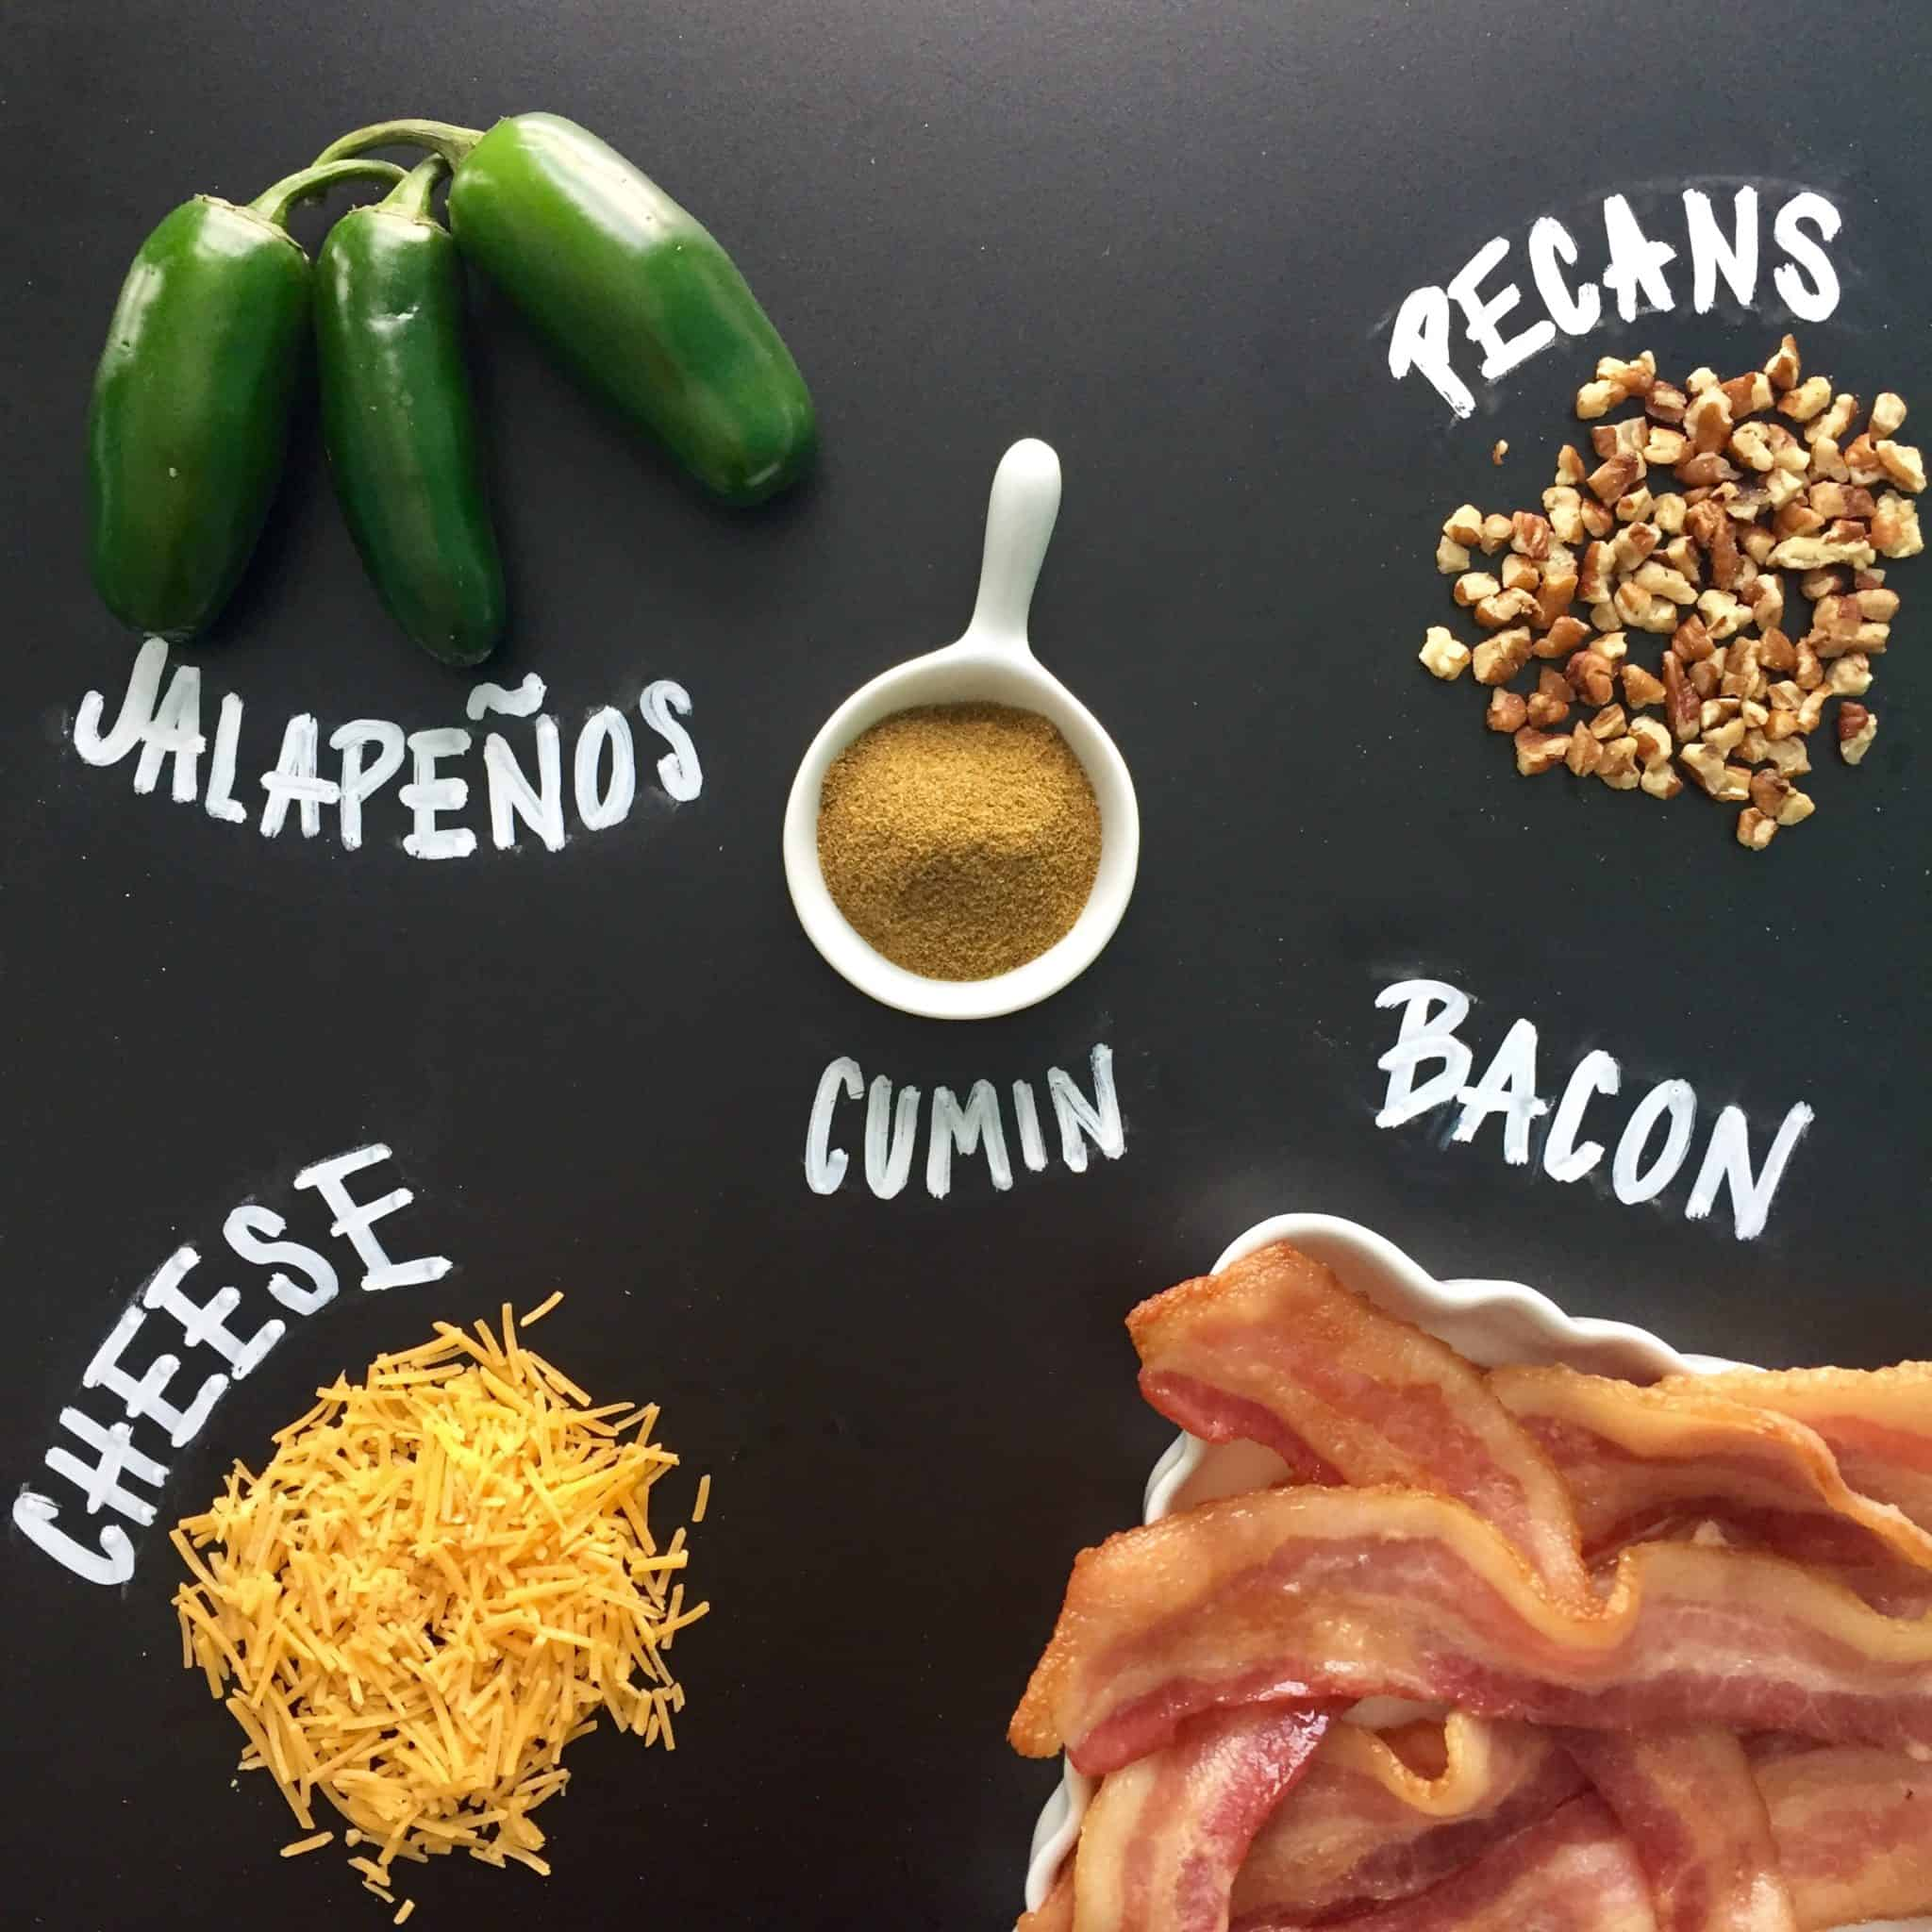 jalapeno bacon cheese ball ingredients with names written on chalkboard